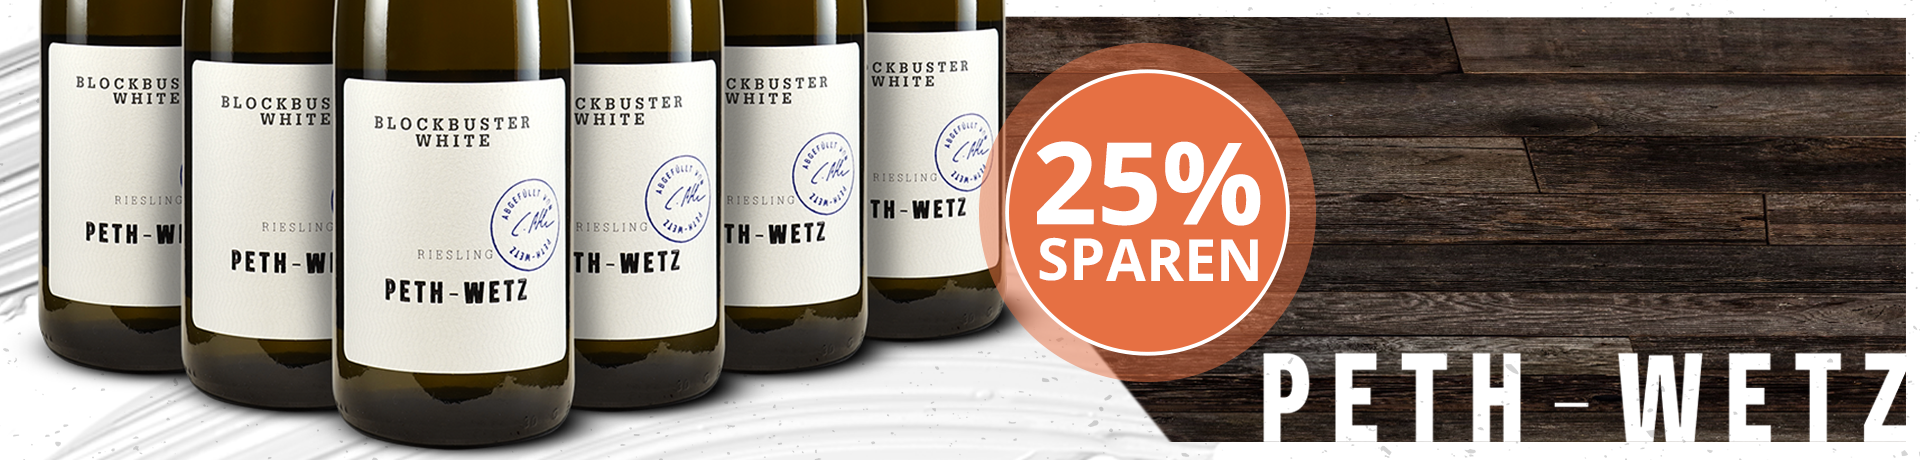 Peth-Wetz Blockbuster White Riesling